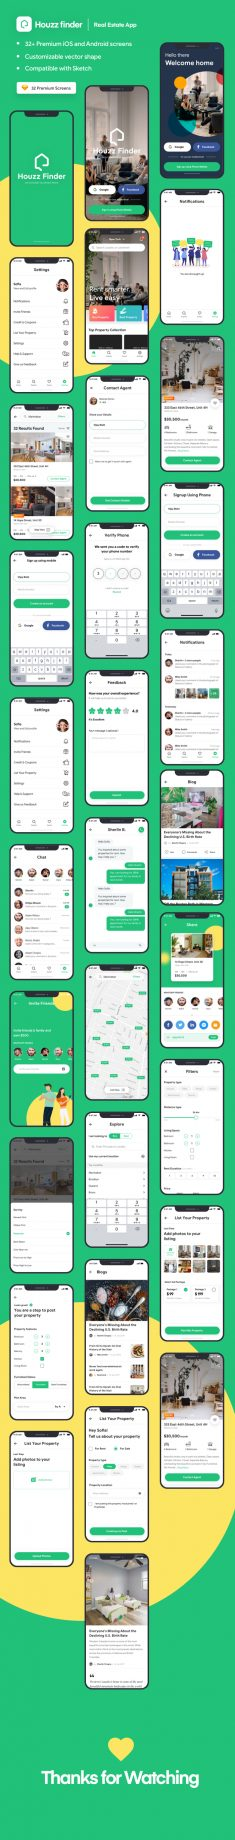 Houzz Finder – A Real Estate iOS Mobile App UI Kit